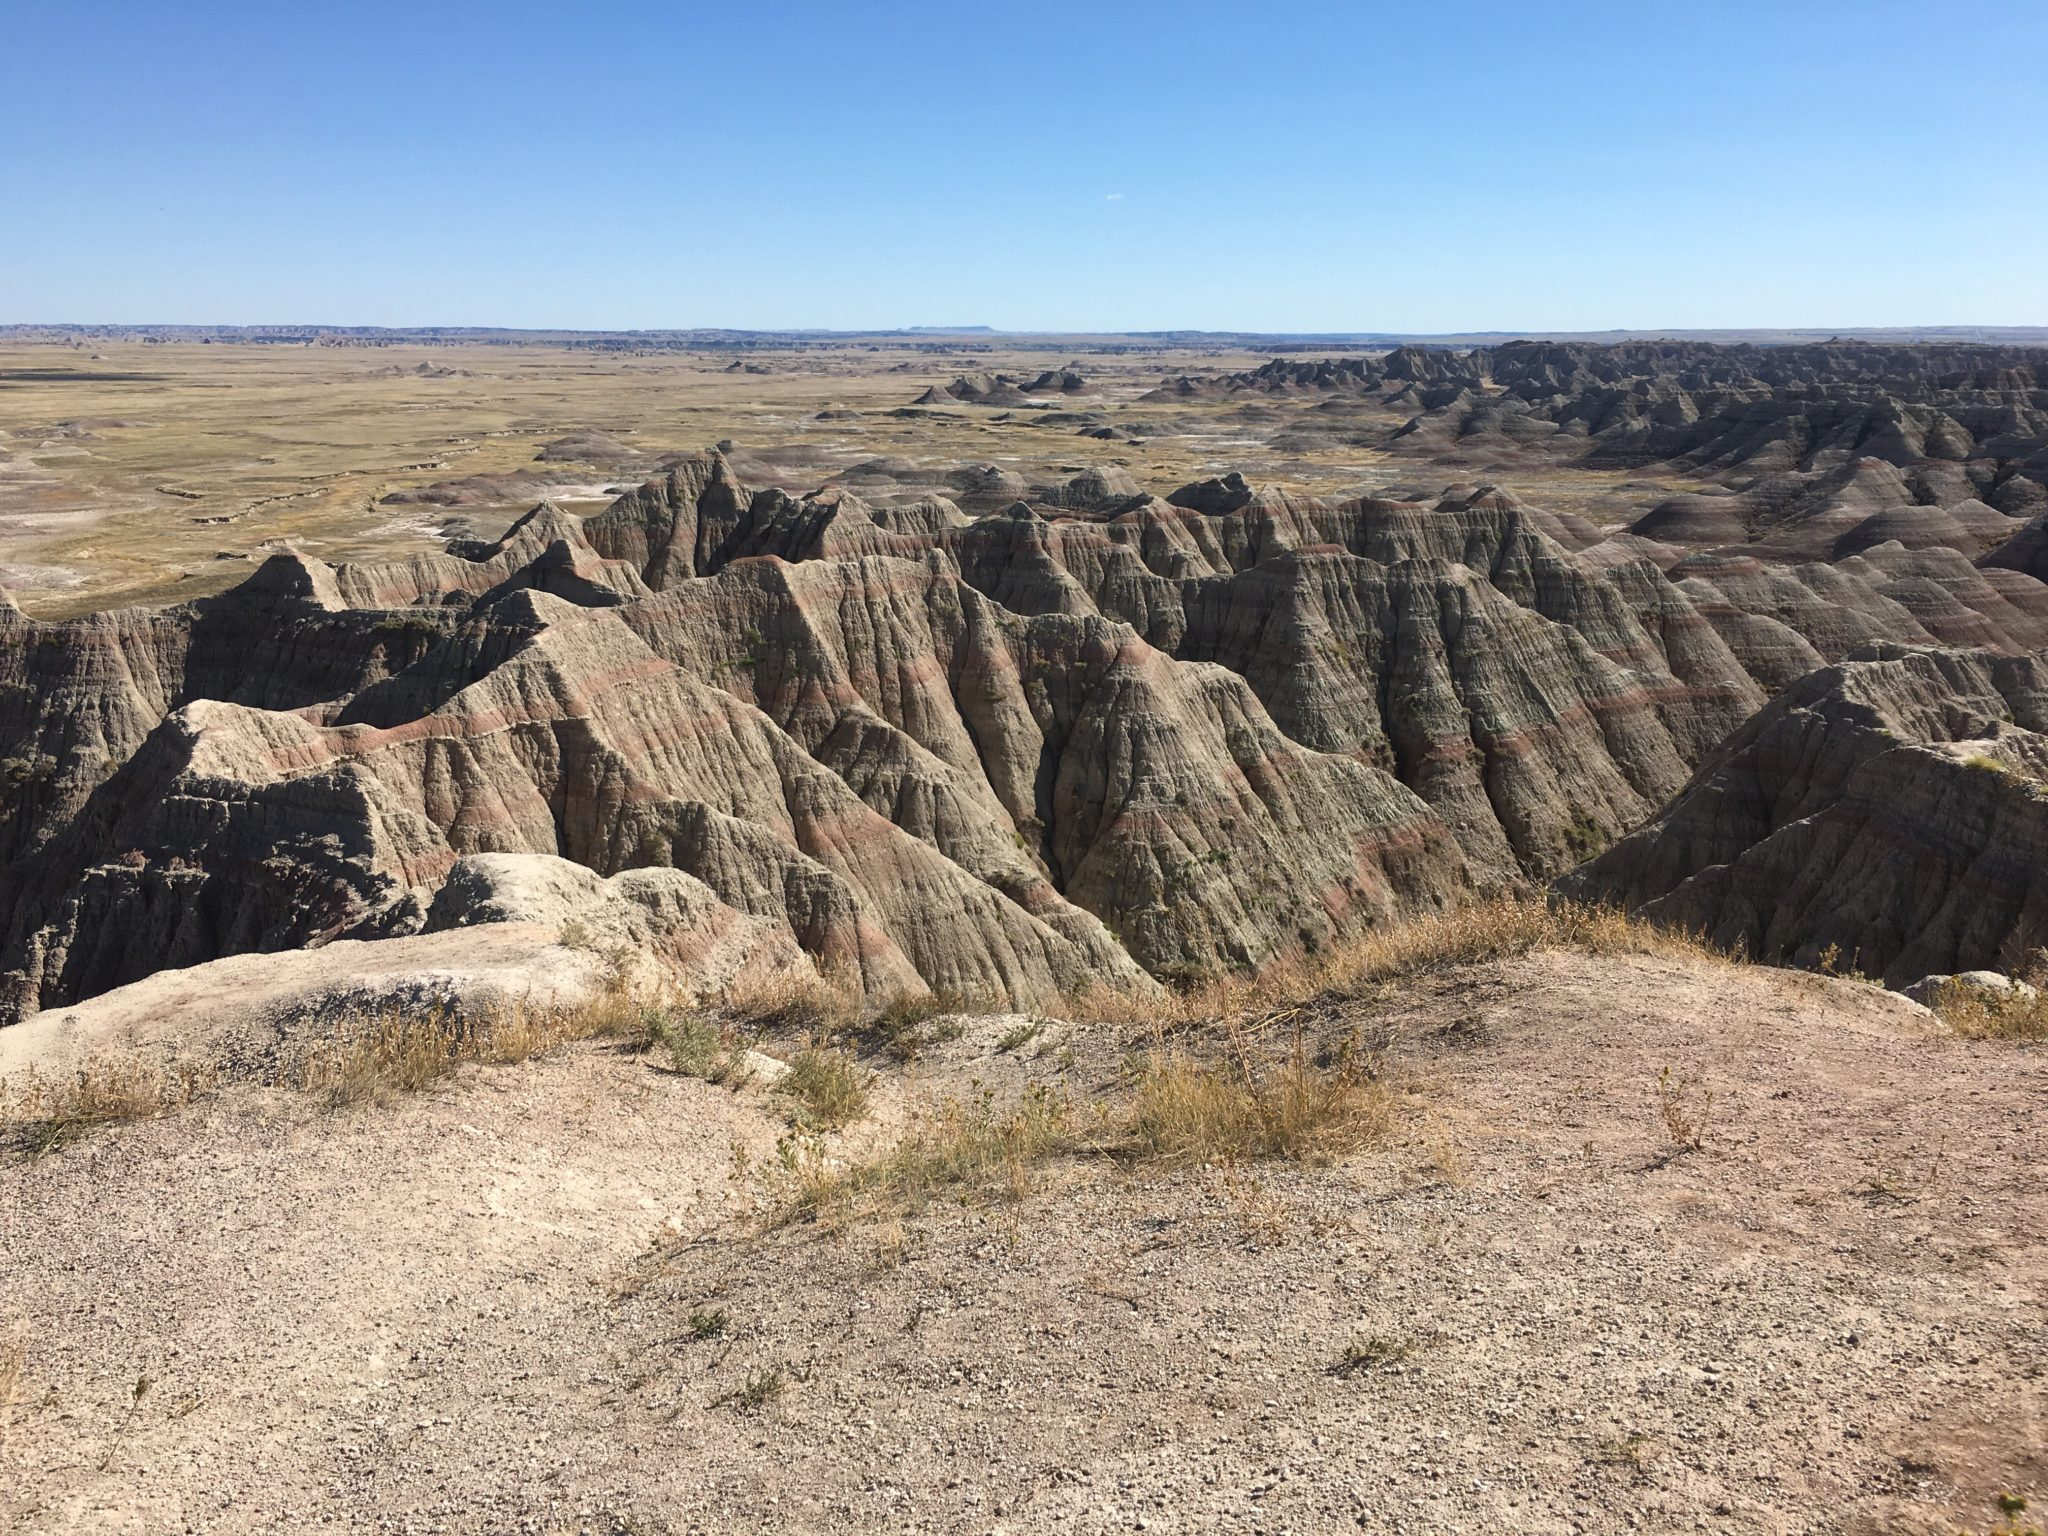 Badlands National Park – Part 1